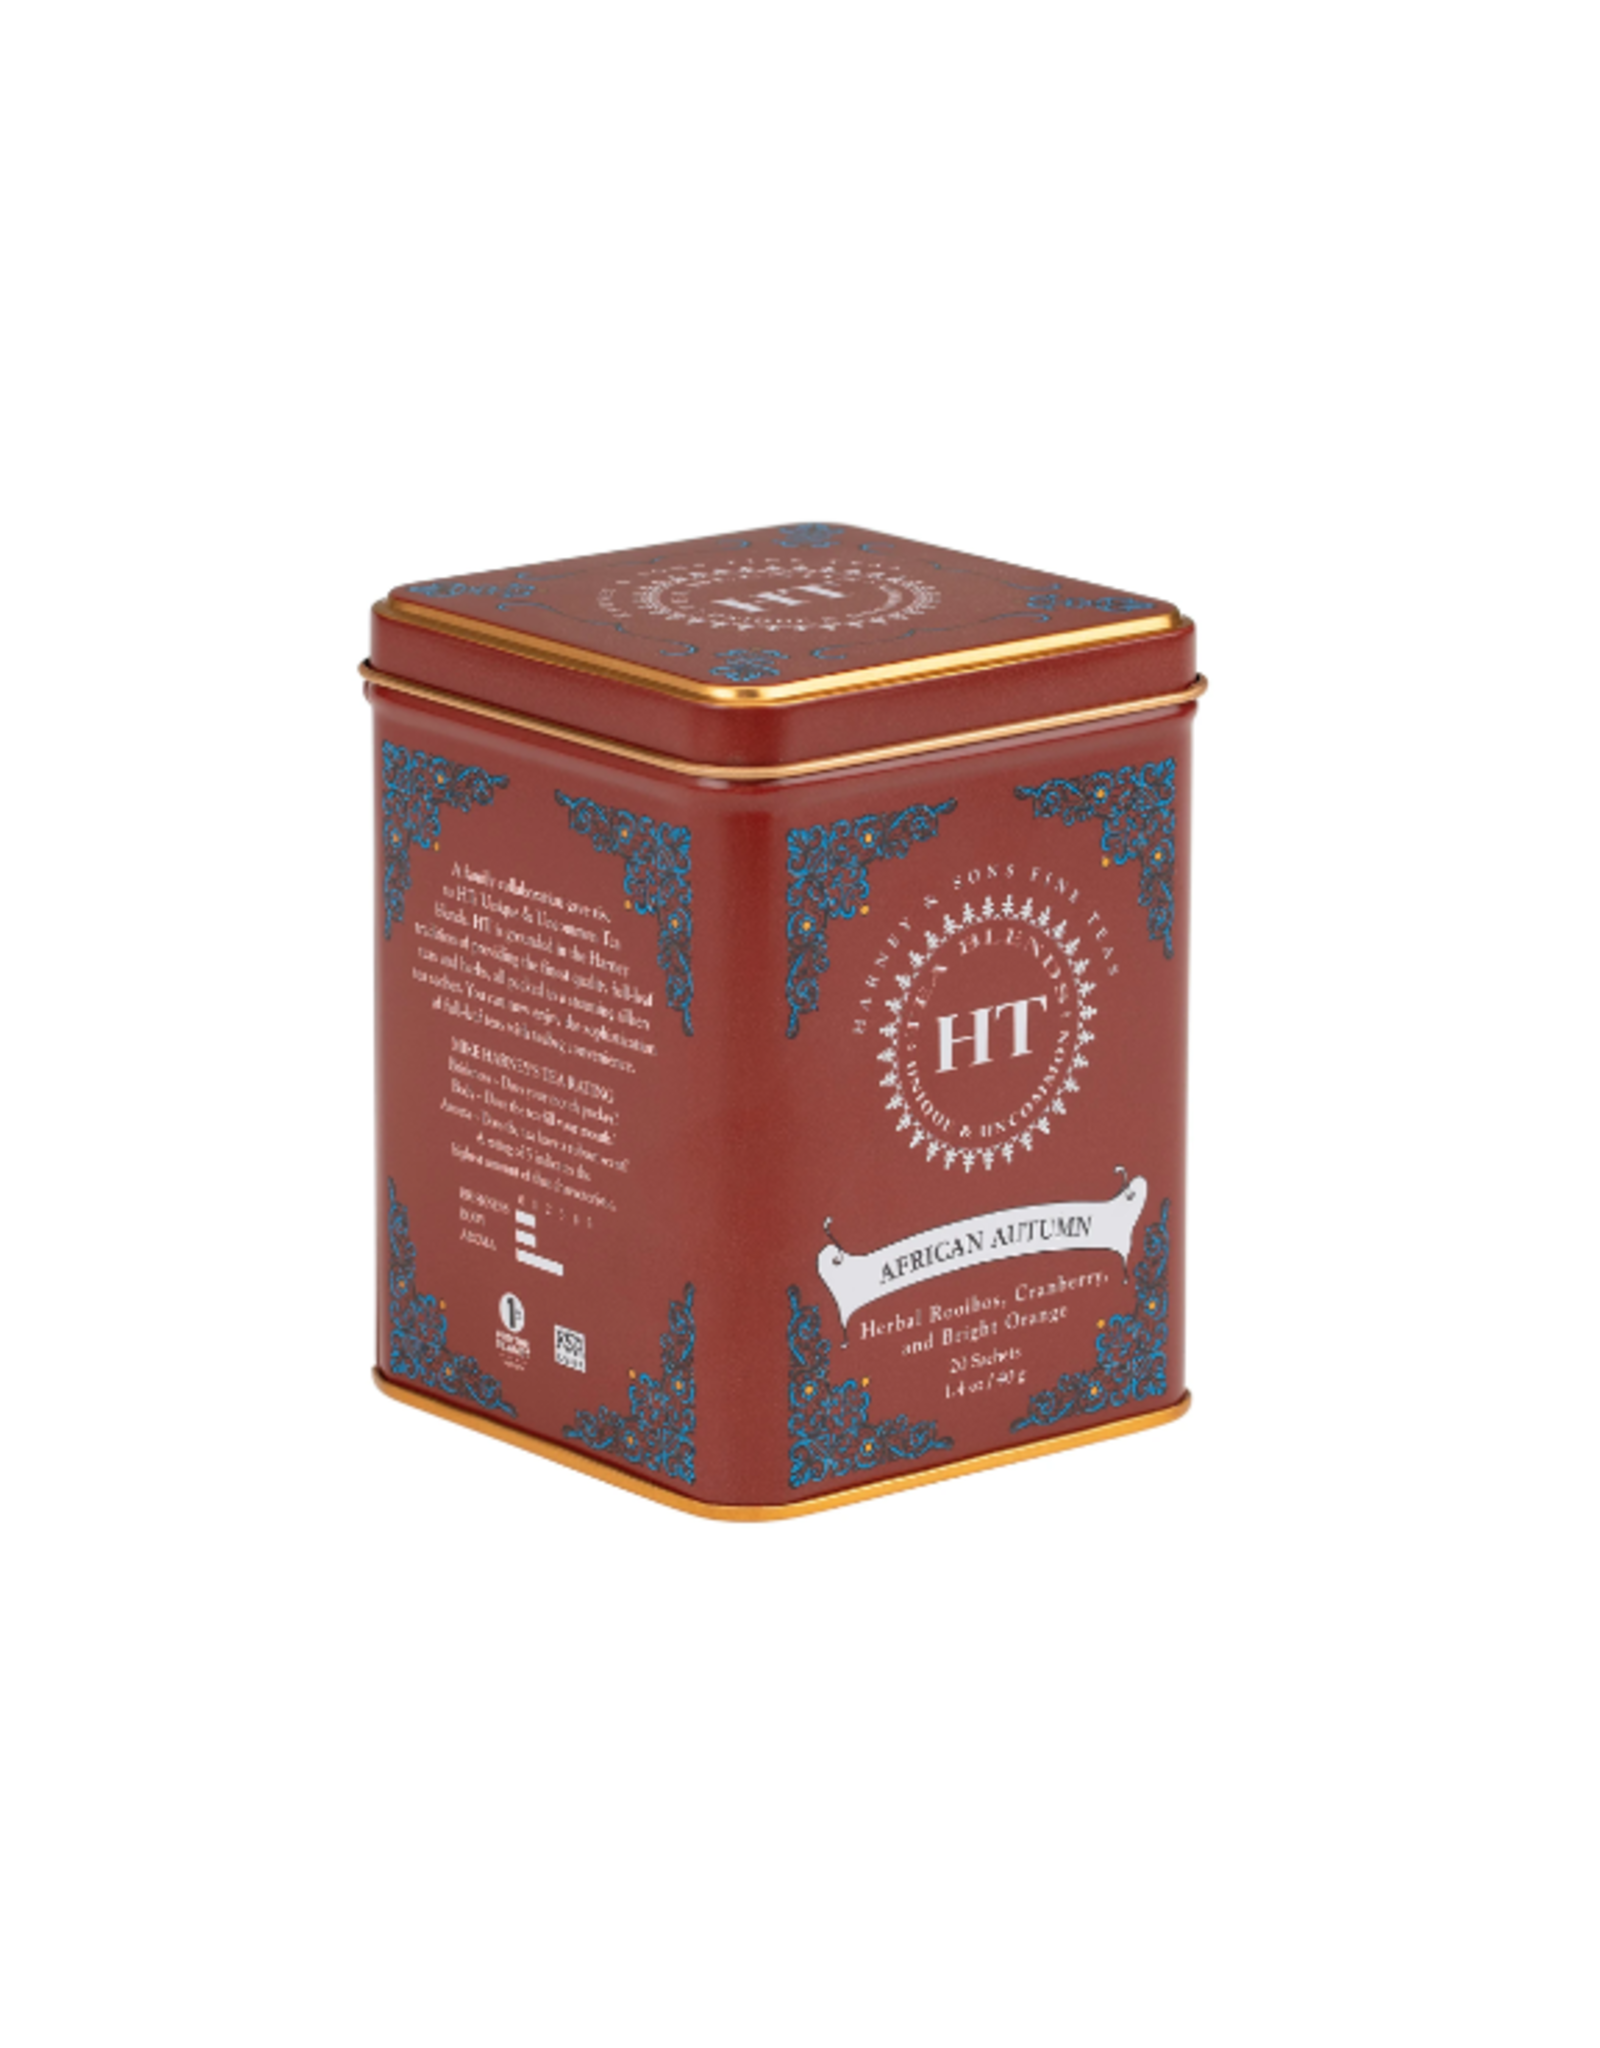 Harney & Sons African Autumn Tea, Tin